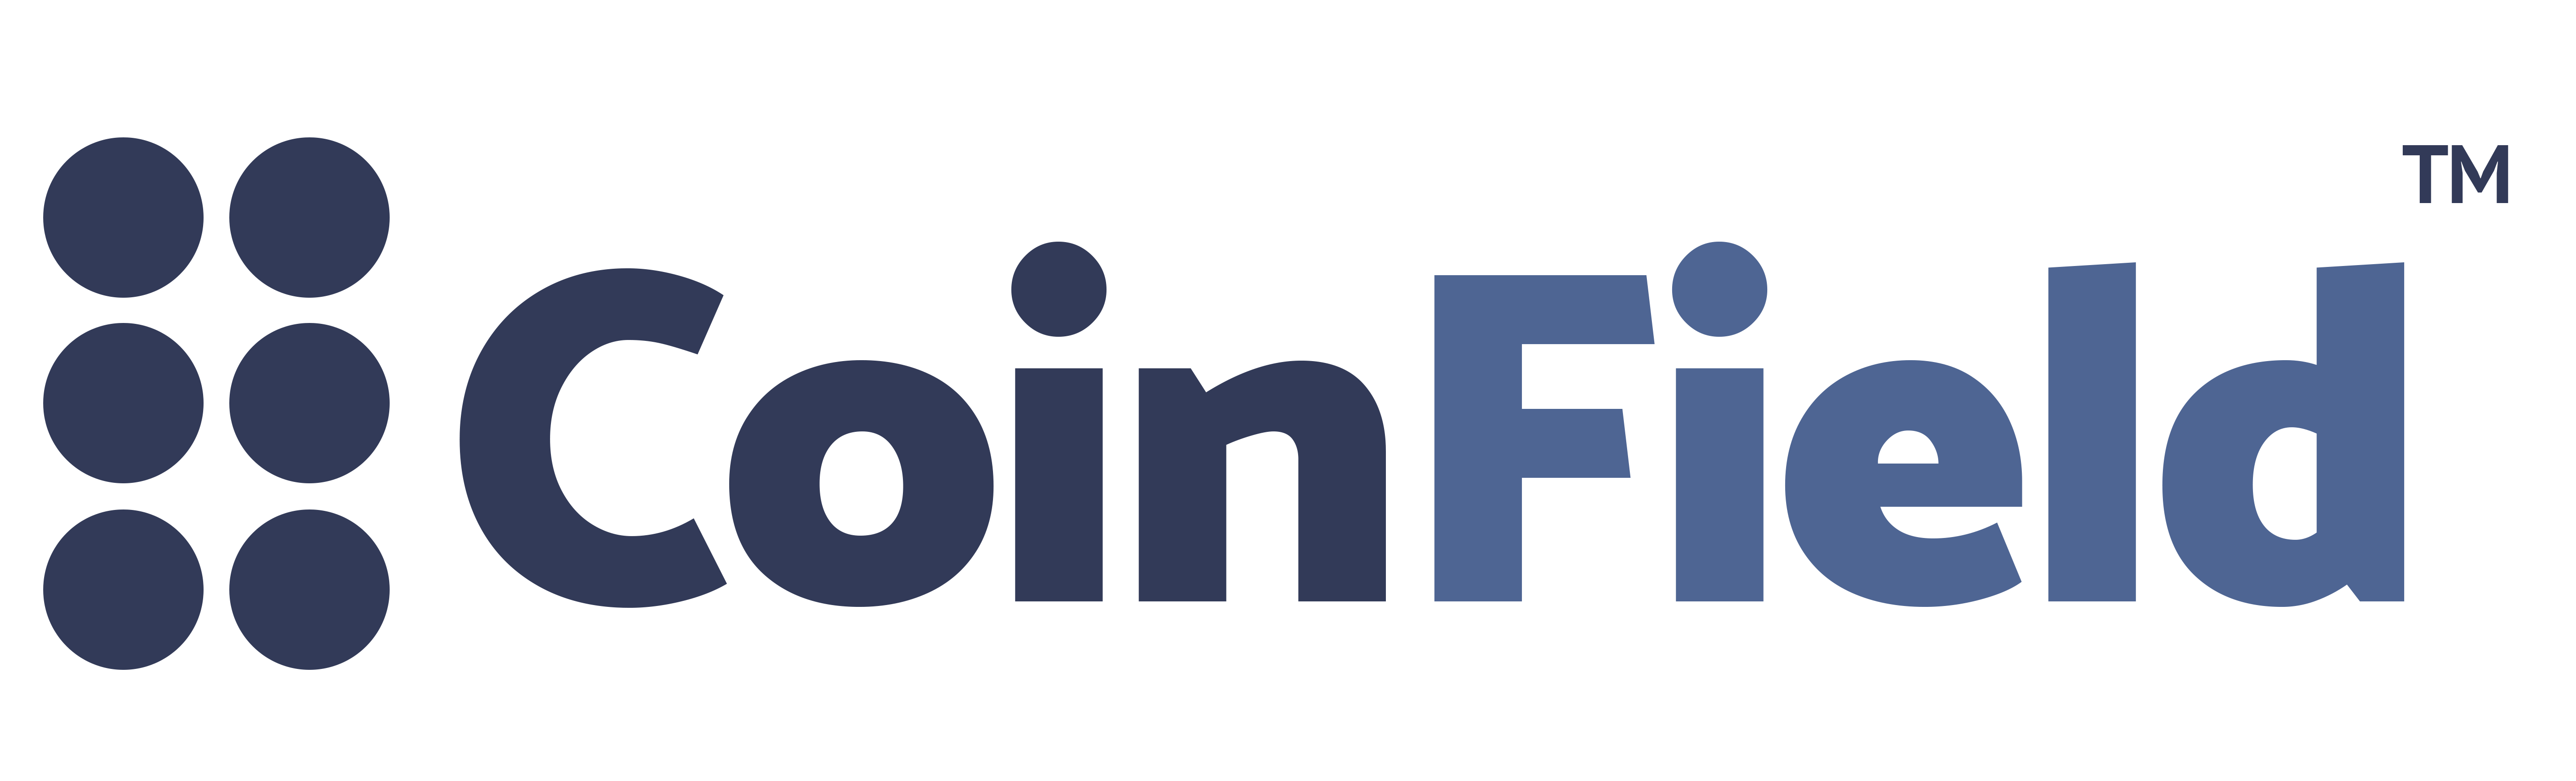 coinfield-logo-dark-5606x1700.png